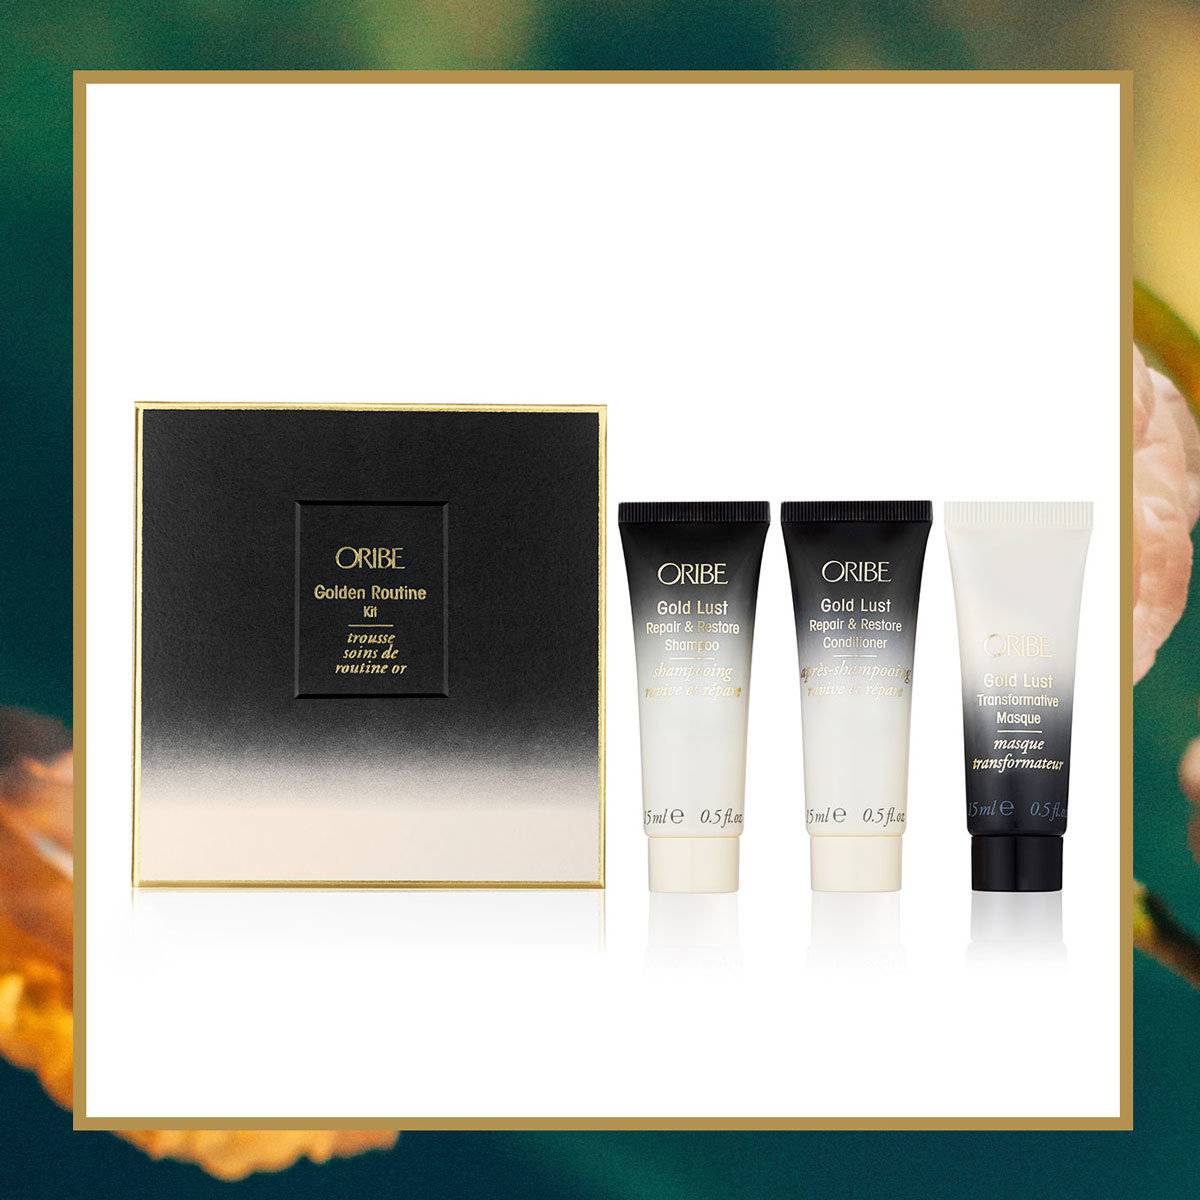 Spend {promo_threshold}_+, receive the Oribe Golden Routine Kit